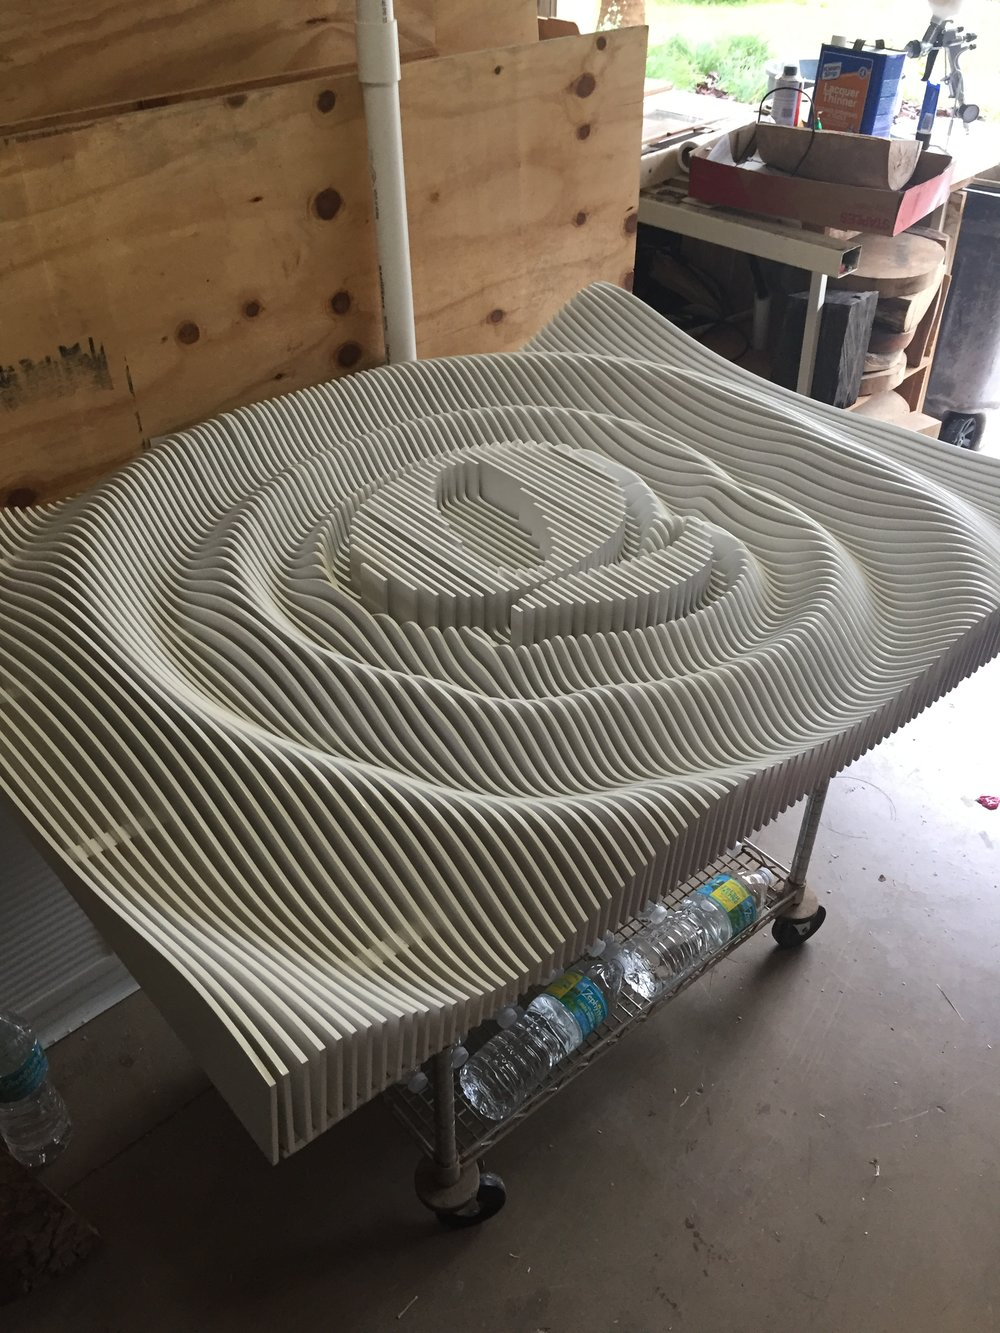 graphic ripple rippling wall panel 2 wooden parametric fixture modern geometric organic abstract terraform teraform laser cut cnc router.JPG